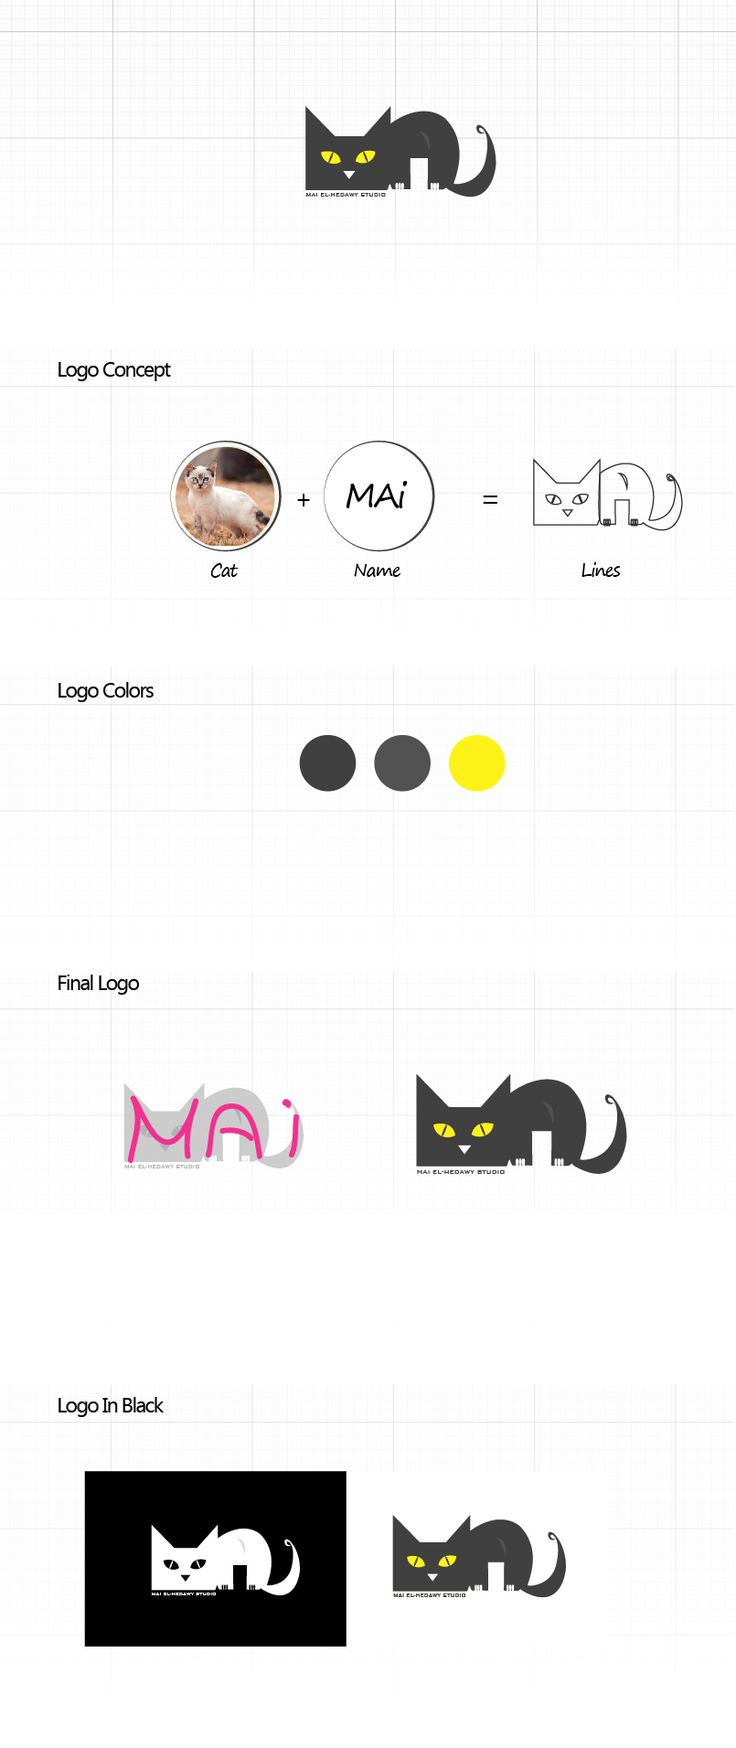 61 best layouts images on Pinterest | Diwali greeting cards ...